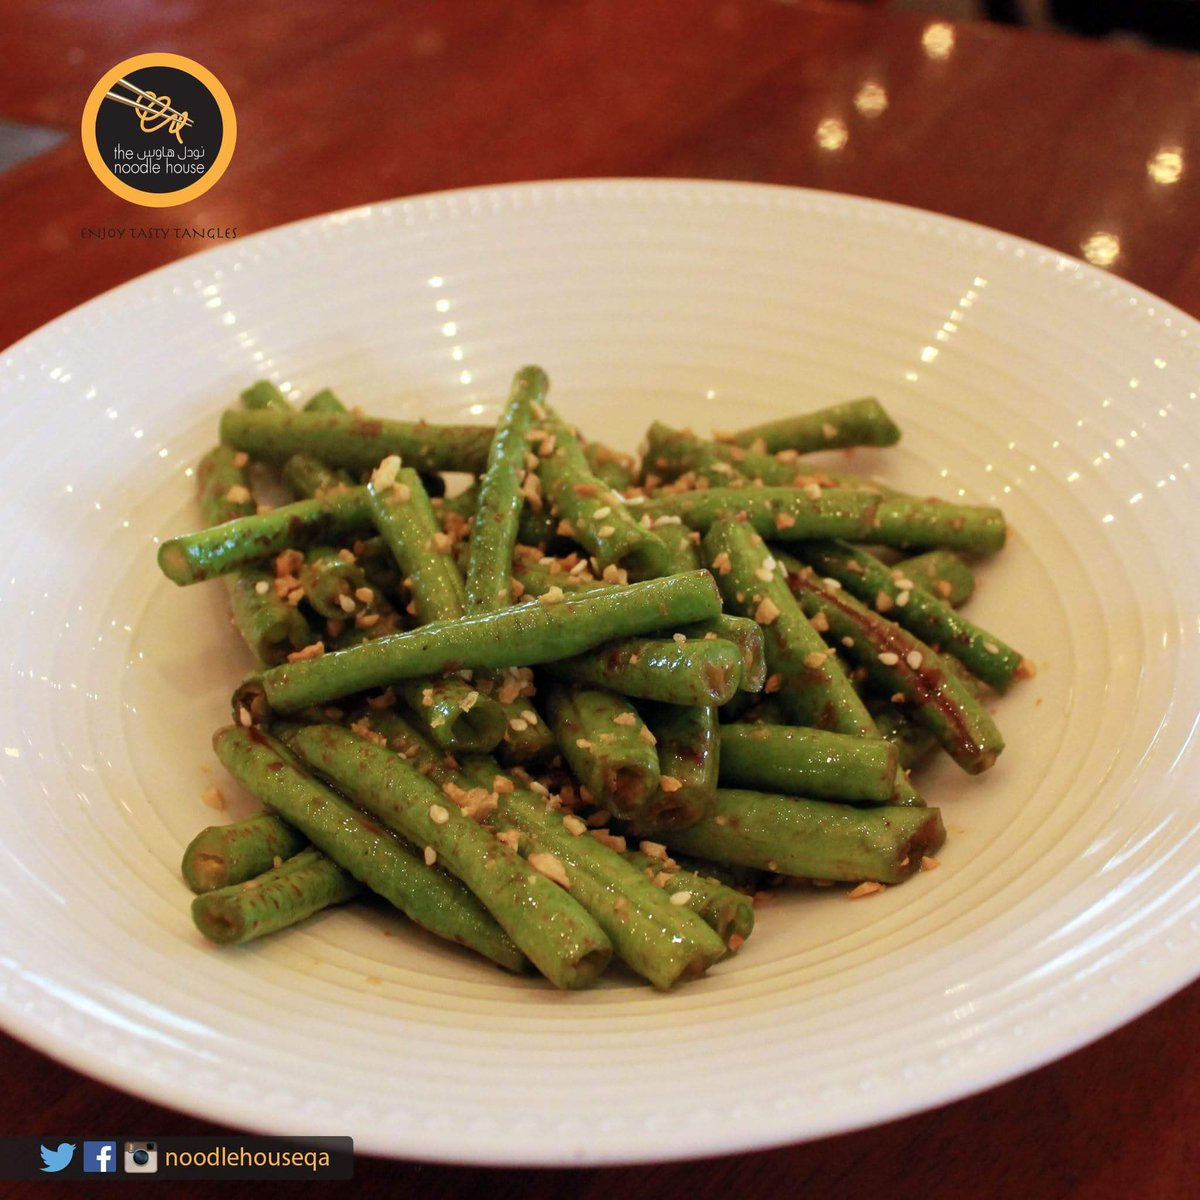 More addictive than French Fries! Fried Crispy Green Beans with Sesame from The Noodle House :D https://t.co/VDGGCLAuAS